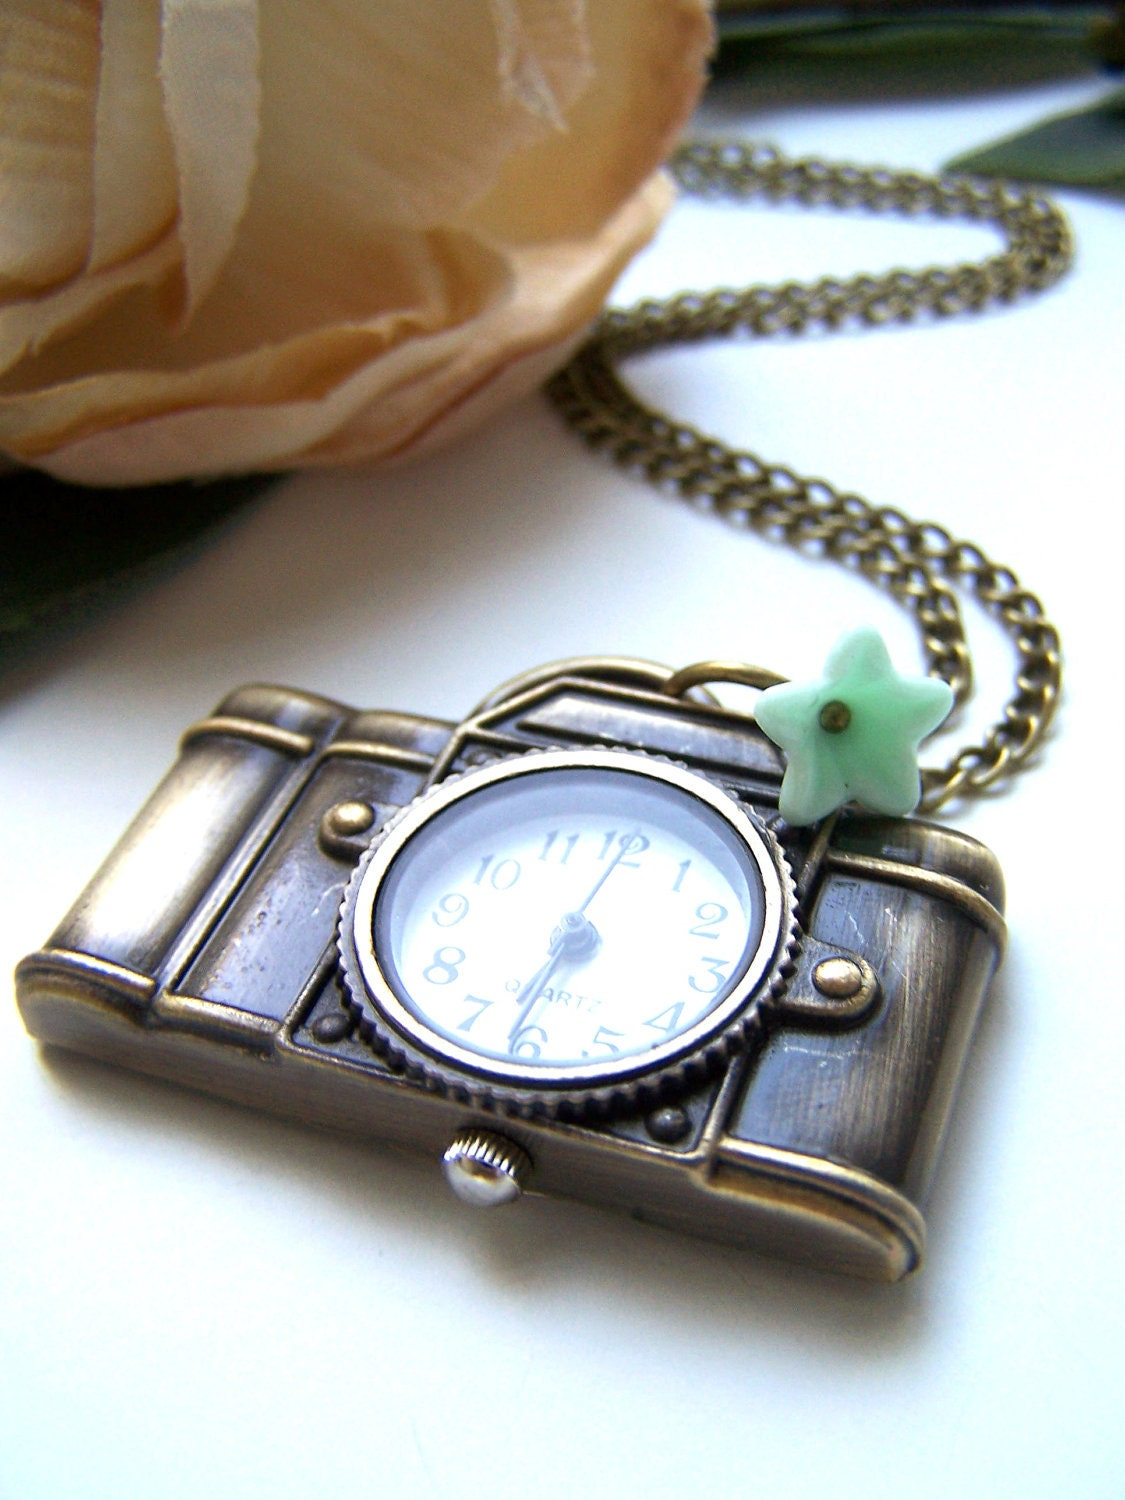 the camera pocket watch (necklace).